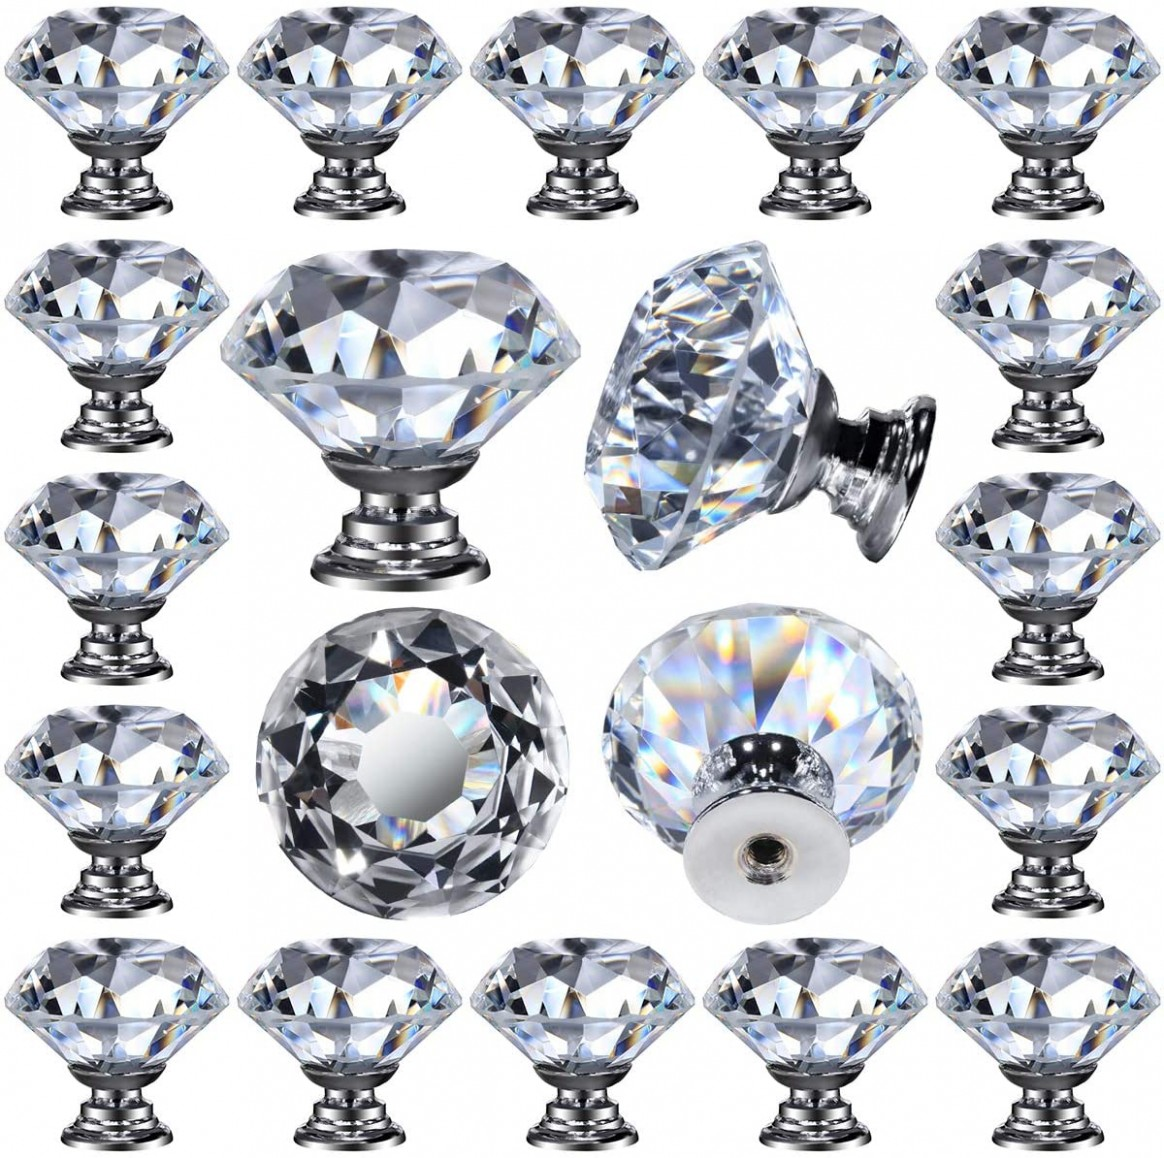 10 pcs Glass Cabinet Knobs Crystal Drawer Pulls Clear 10 mm Diamond for  Kitchen, Bathroom Cabinet, Dresser and Cupboard by DeElf - Glass Kitchen Cabinet Pulls And Knobs